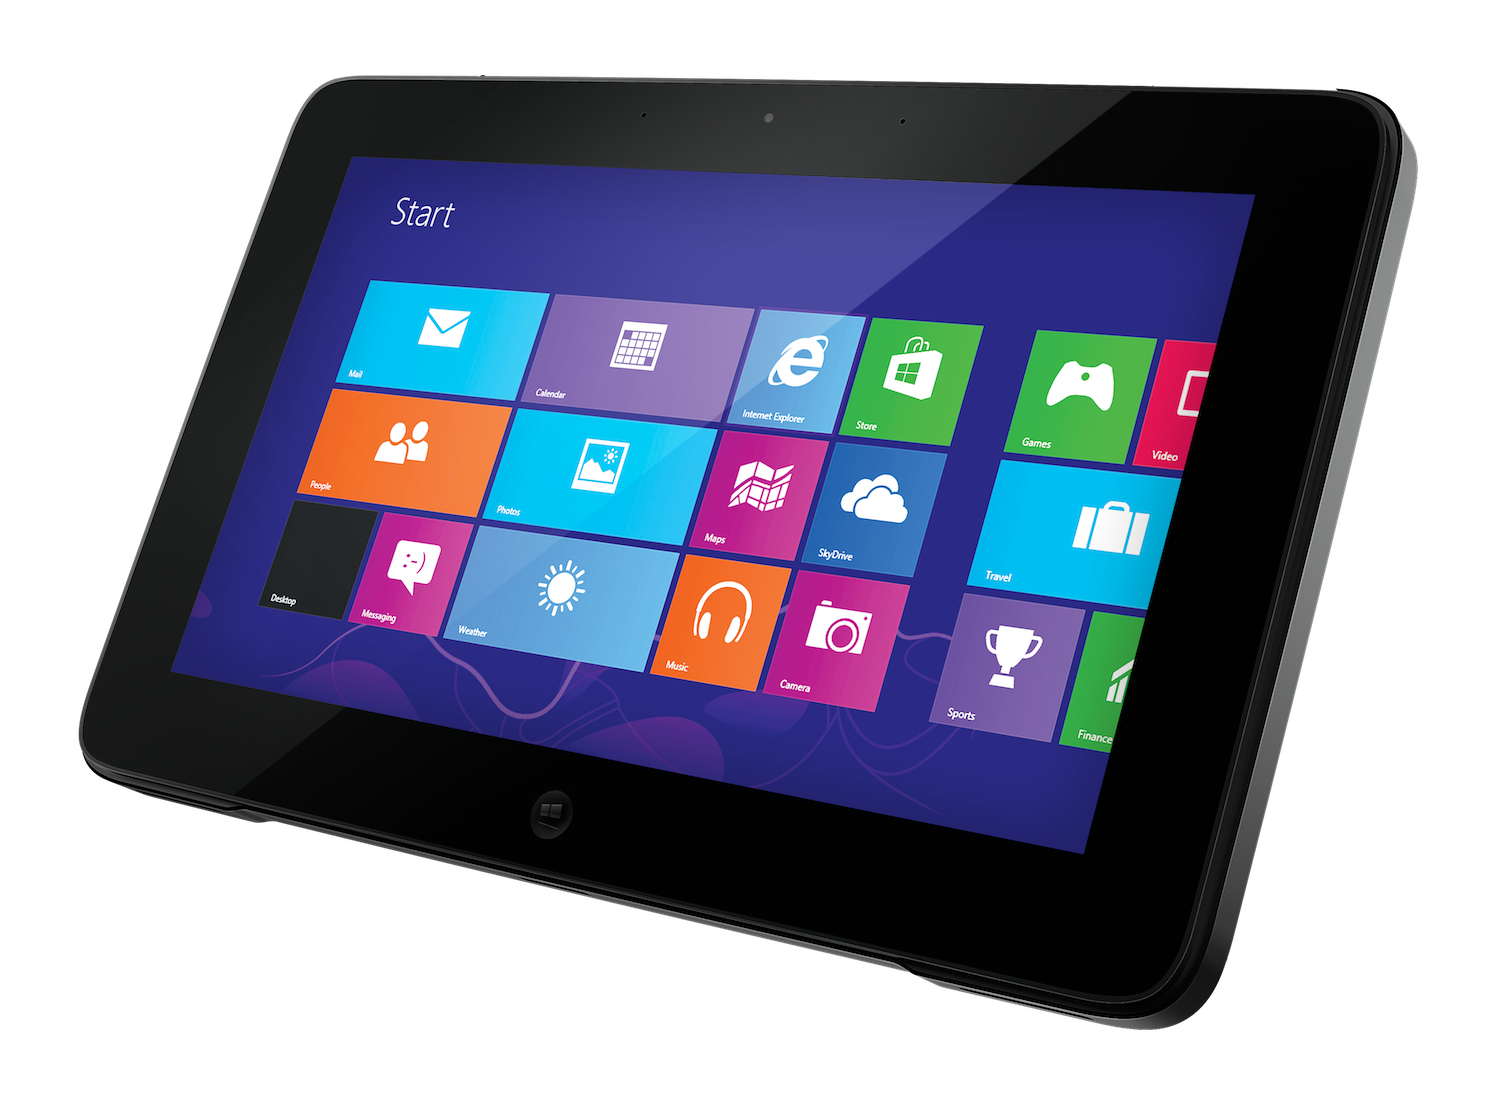 Download tablet png images hq png image freepngimg download png image tablet png images voltagebd Choice Image